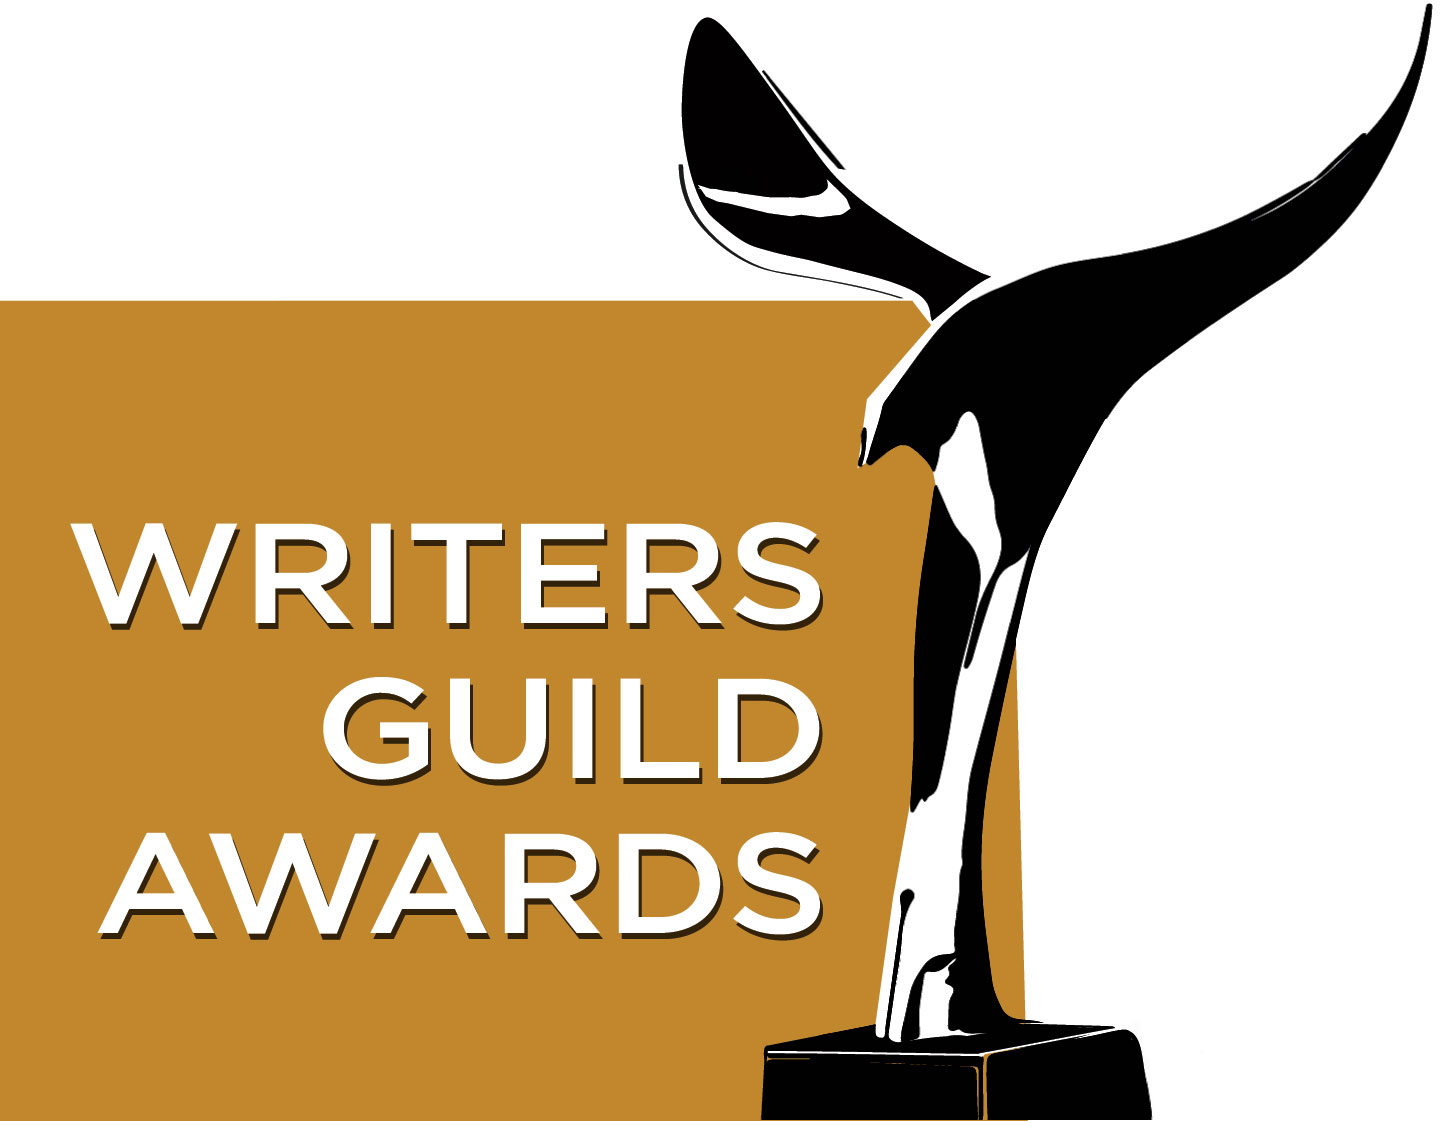 2019 Writers Guild Awards Winners & Nominees